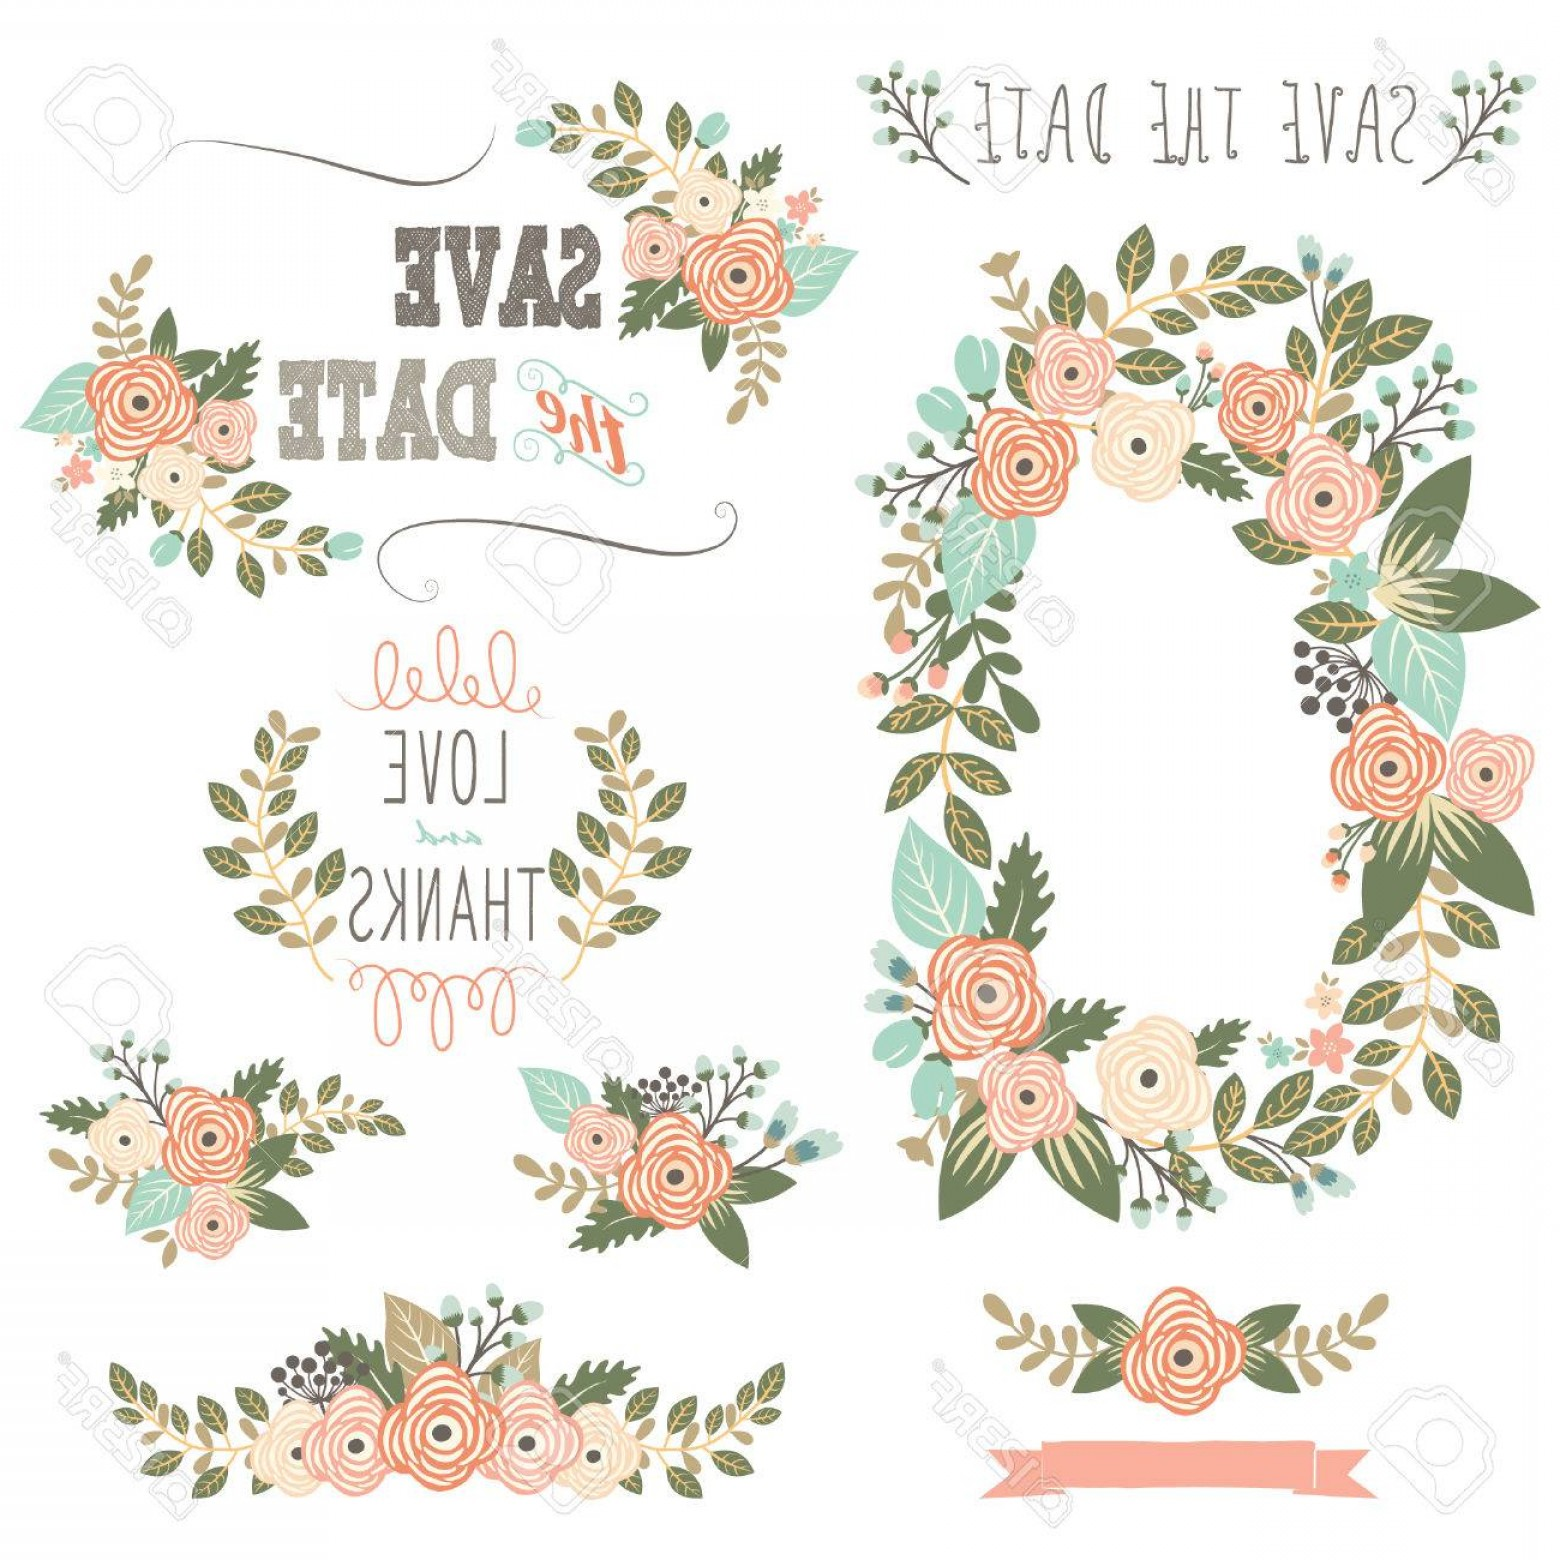 1560x1560 Photostock Vector Vintage Rustic Floral Wreath Rongholland